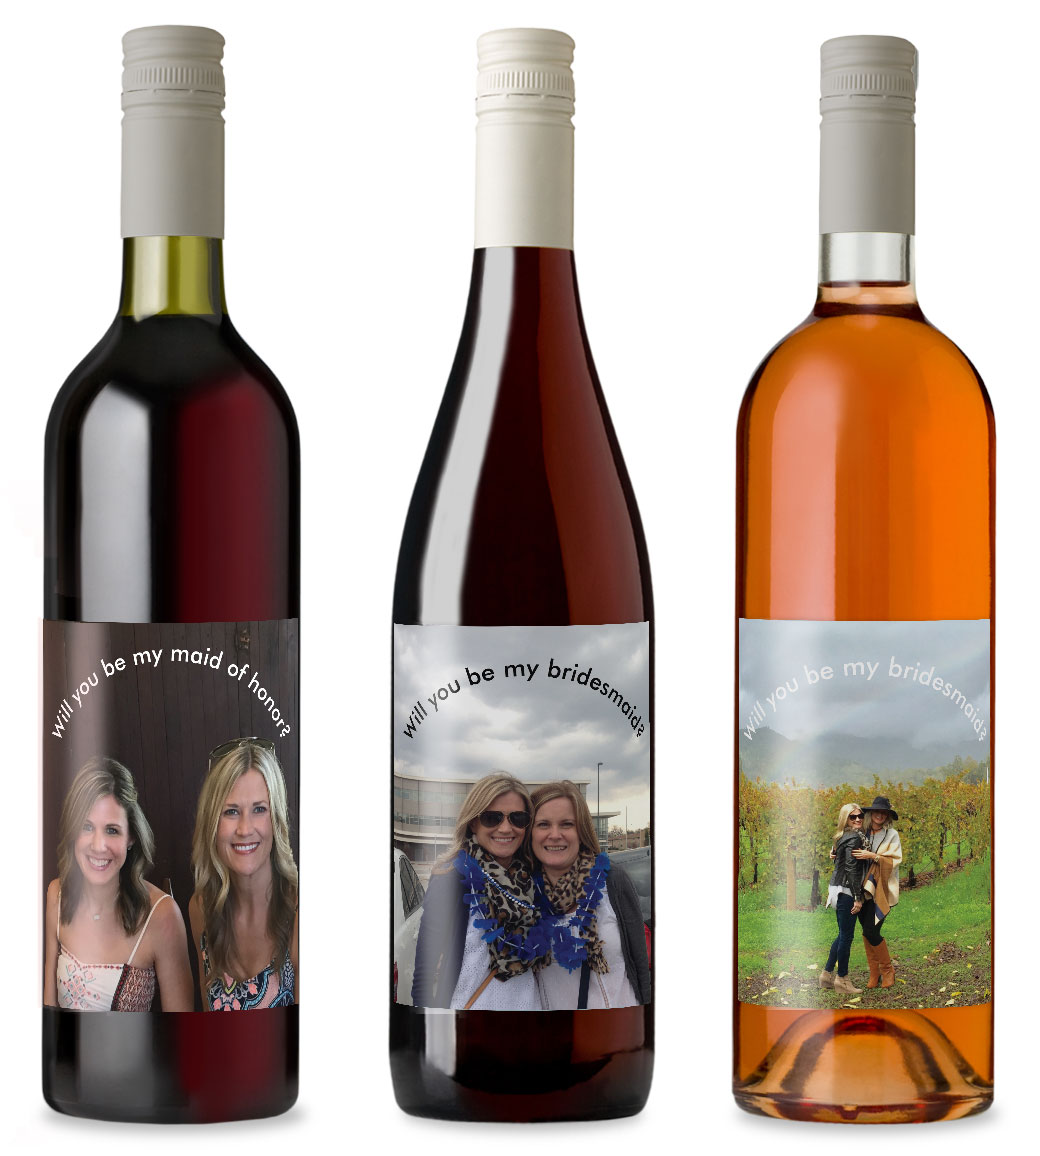 Photo wine labels for bridesmaids